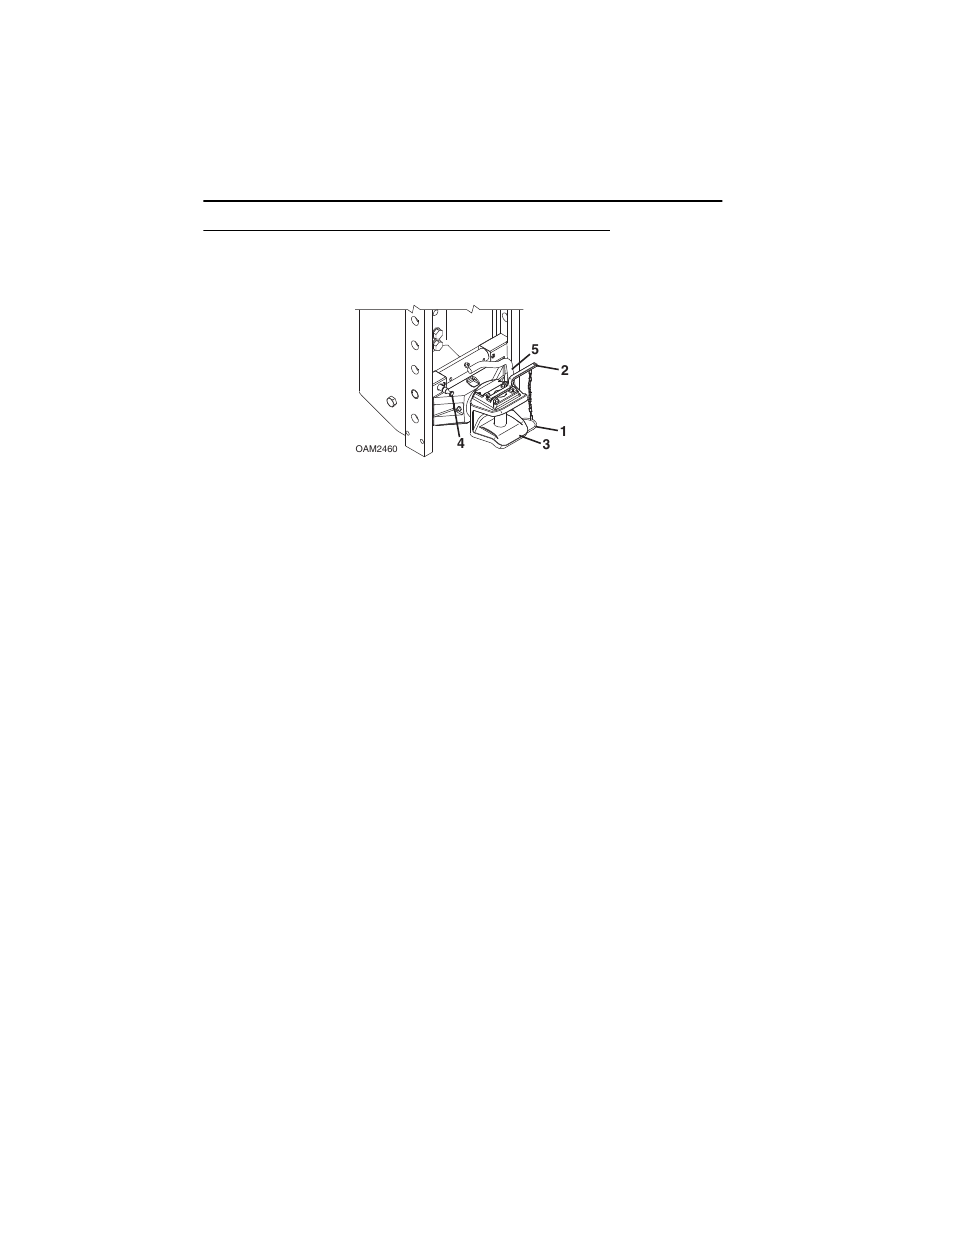 Pin hitch, Pin hitch -36 | Deutz-Fahr Agrovector 35.7 User Manual |